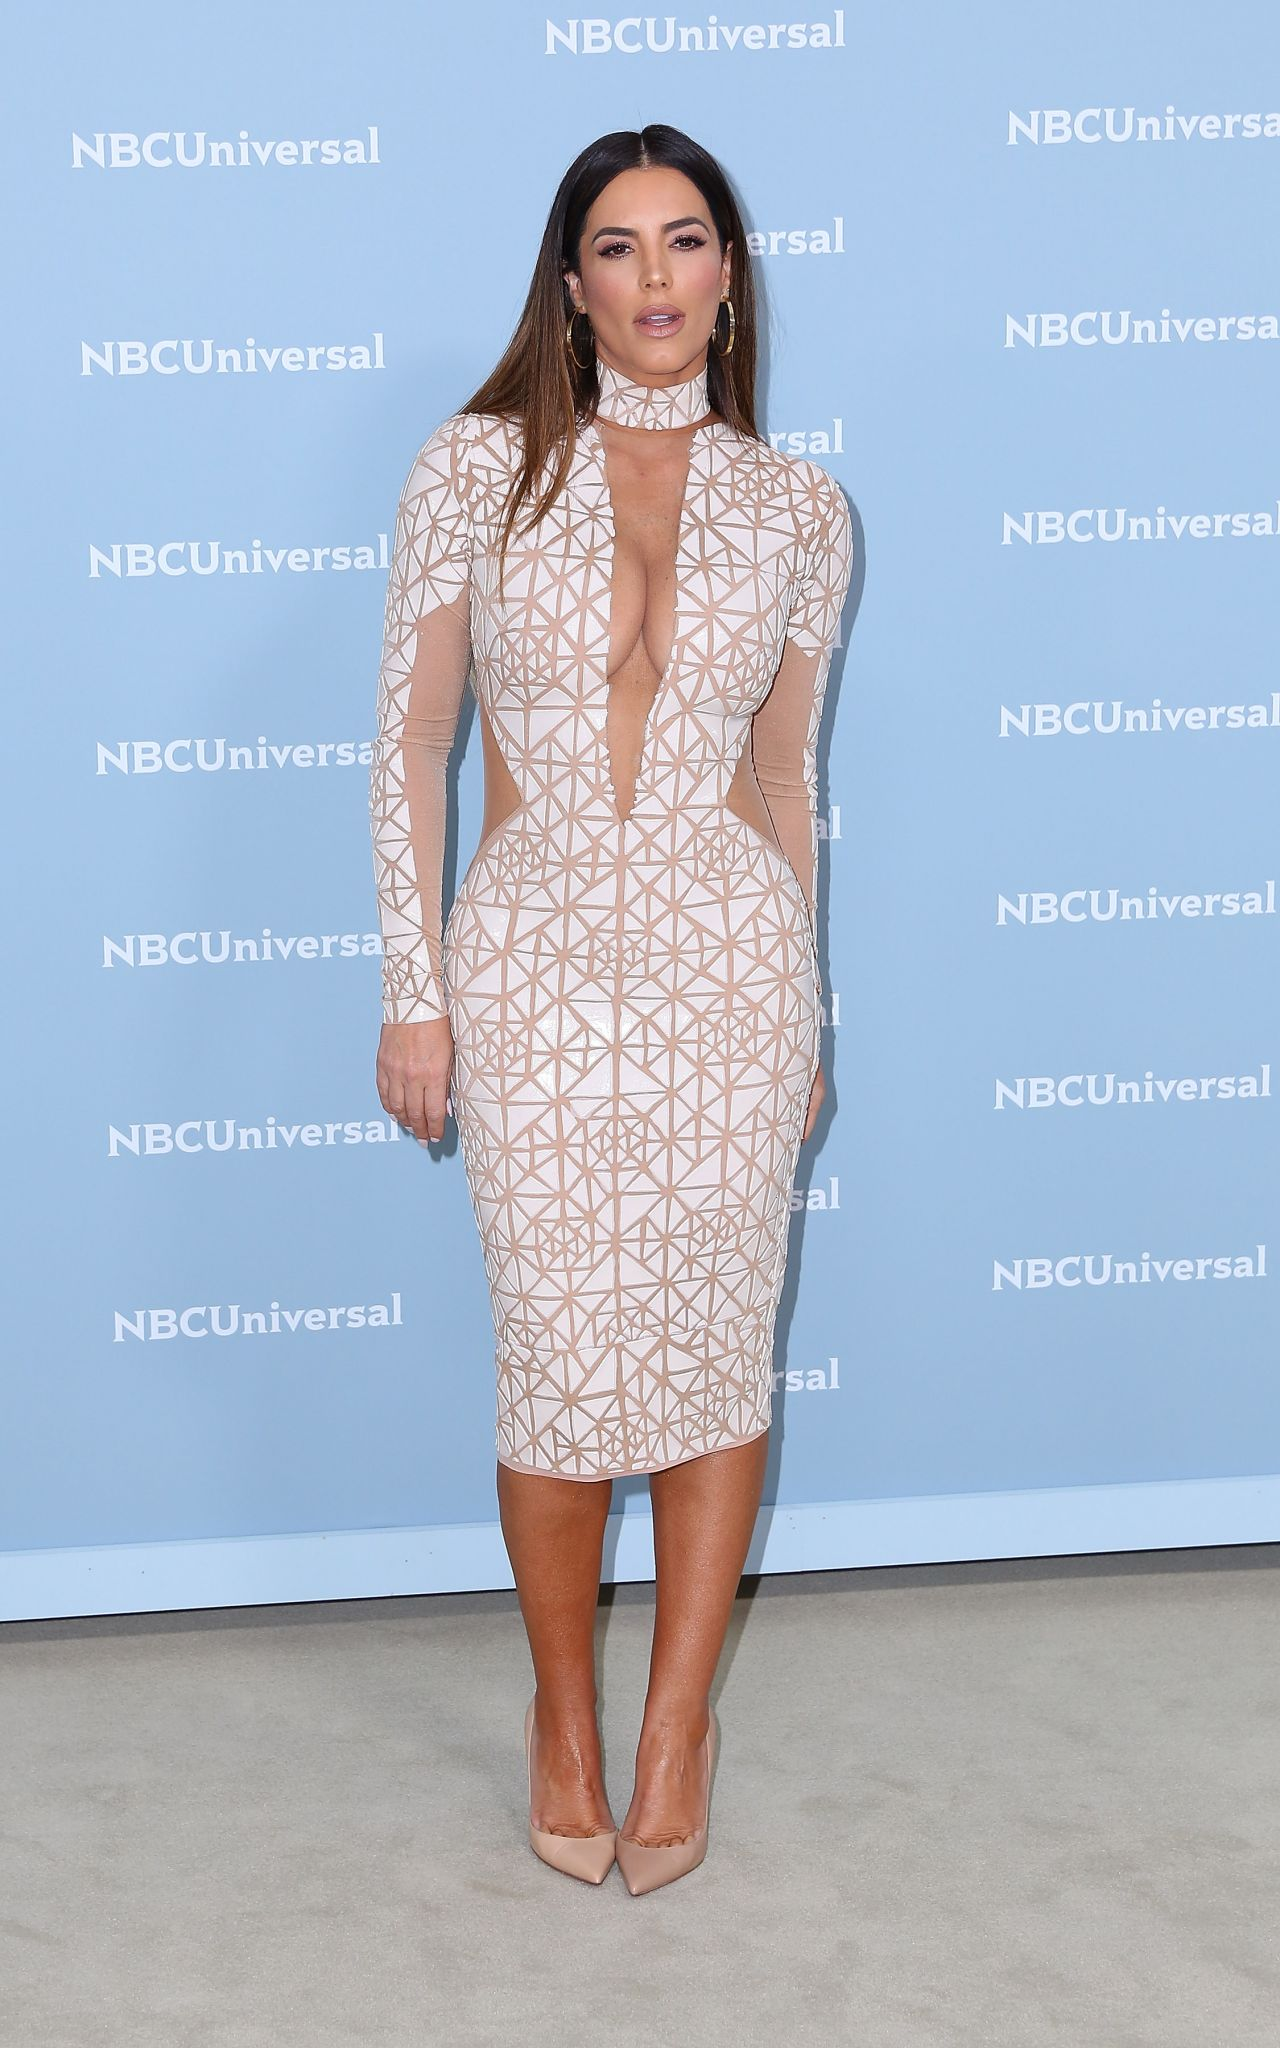 Gaby Espino 2018 Nbcuniversal Upfront In Nyc